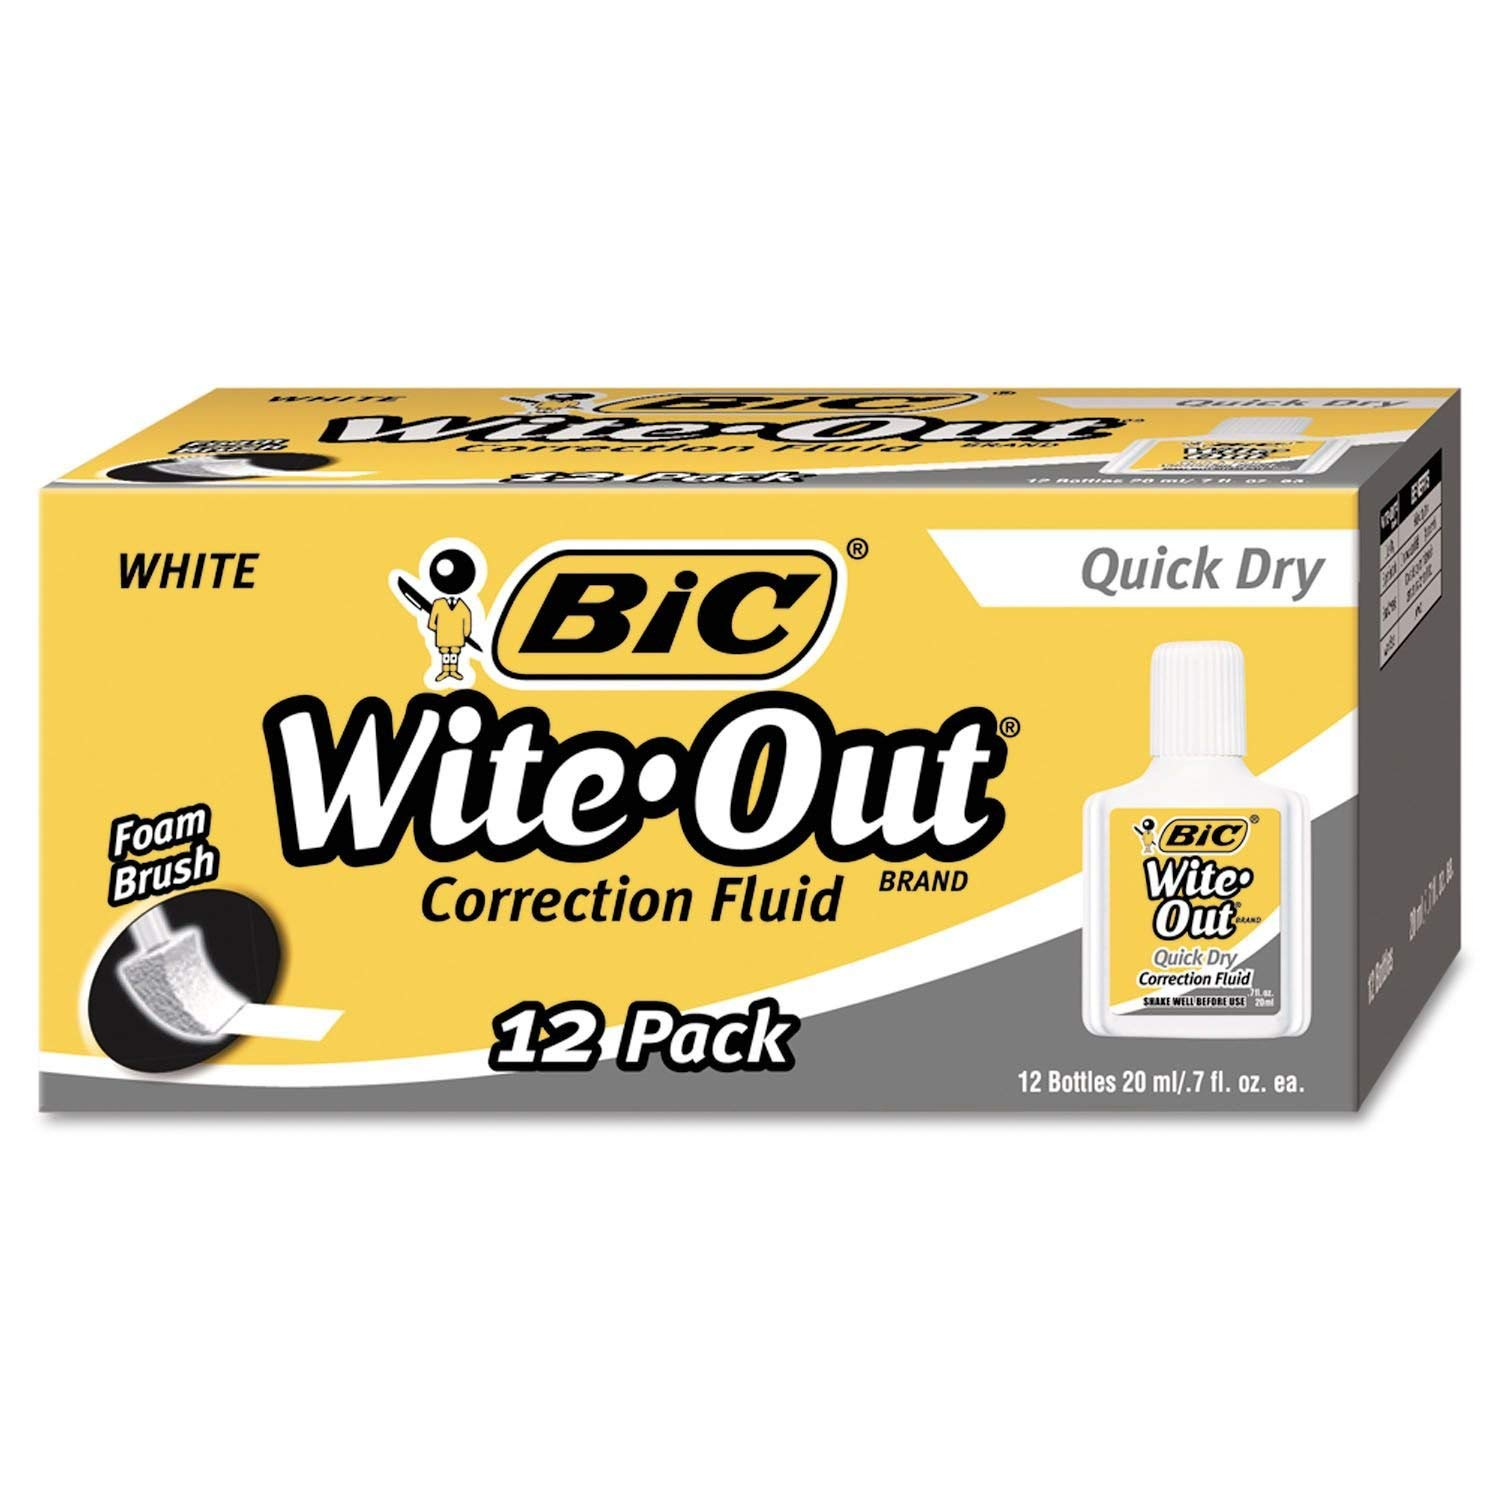 WOFQD12WE Wite-Out Quick Dry Correction Fluid, 20 ml Bottle, White, 1/Dozen, Pack of 5